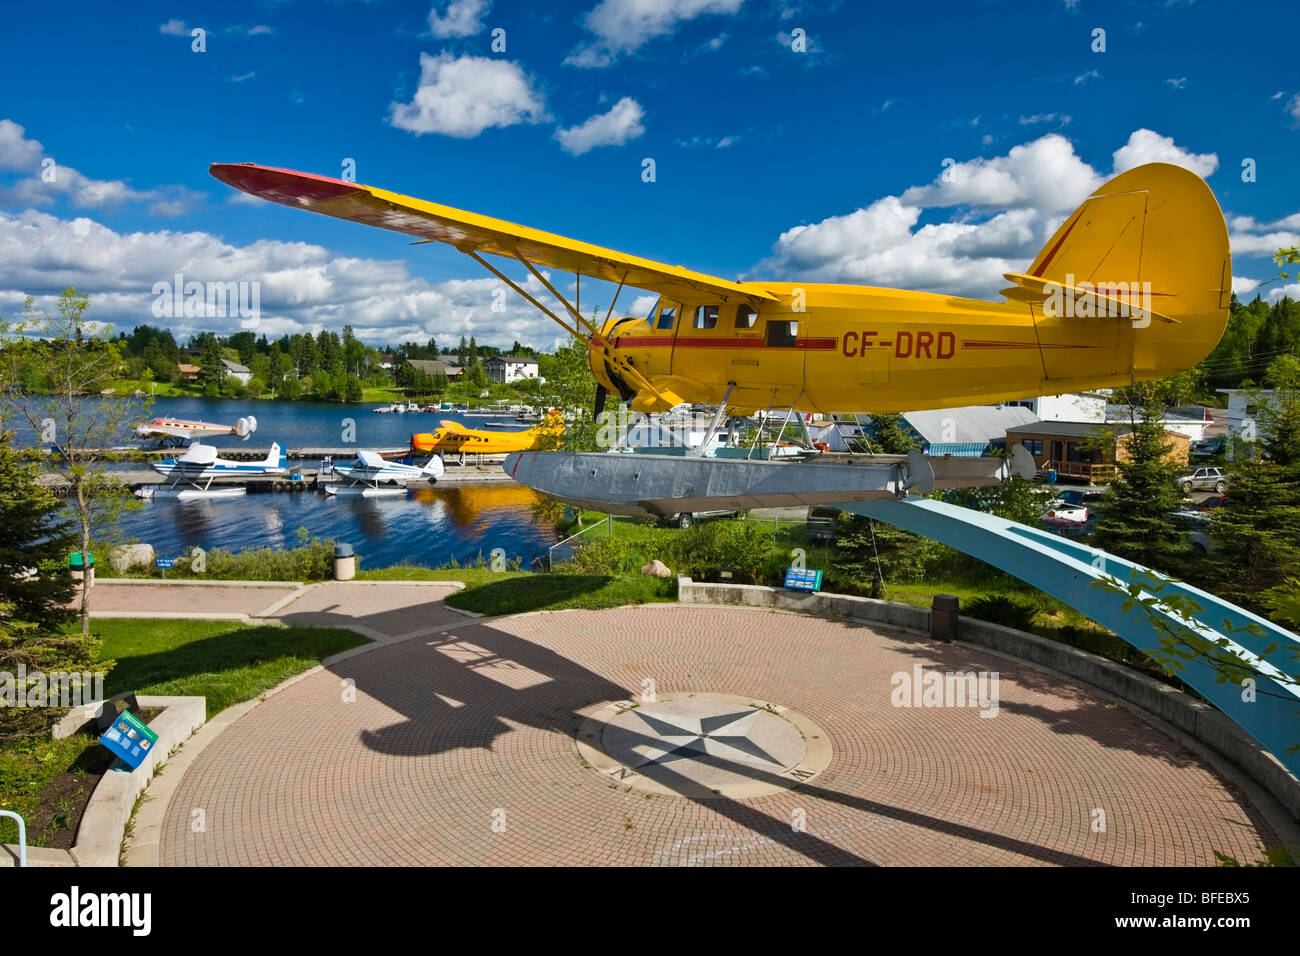 Norseman aircraft on a pedestal in the Norseman Heritage Centre Park in the town of Red Lake, Ontario, Canada - Stock Image